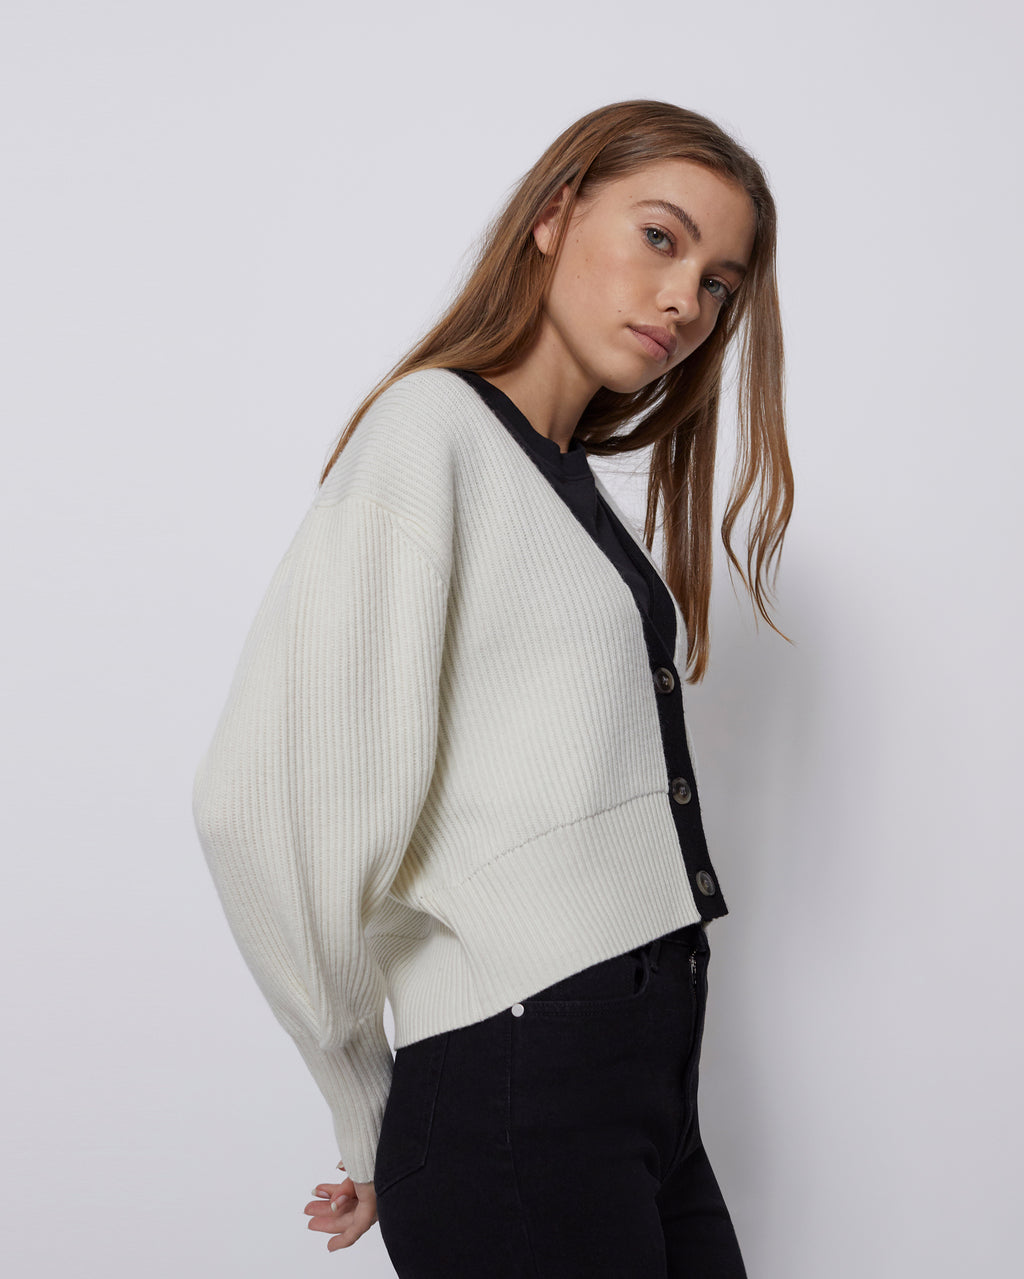 The Sparrow Cardigan in Powder White Multi